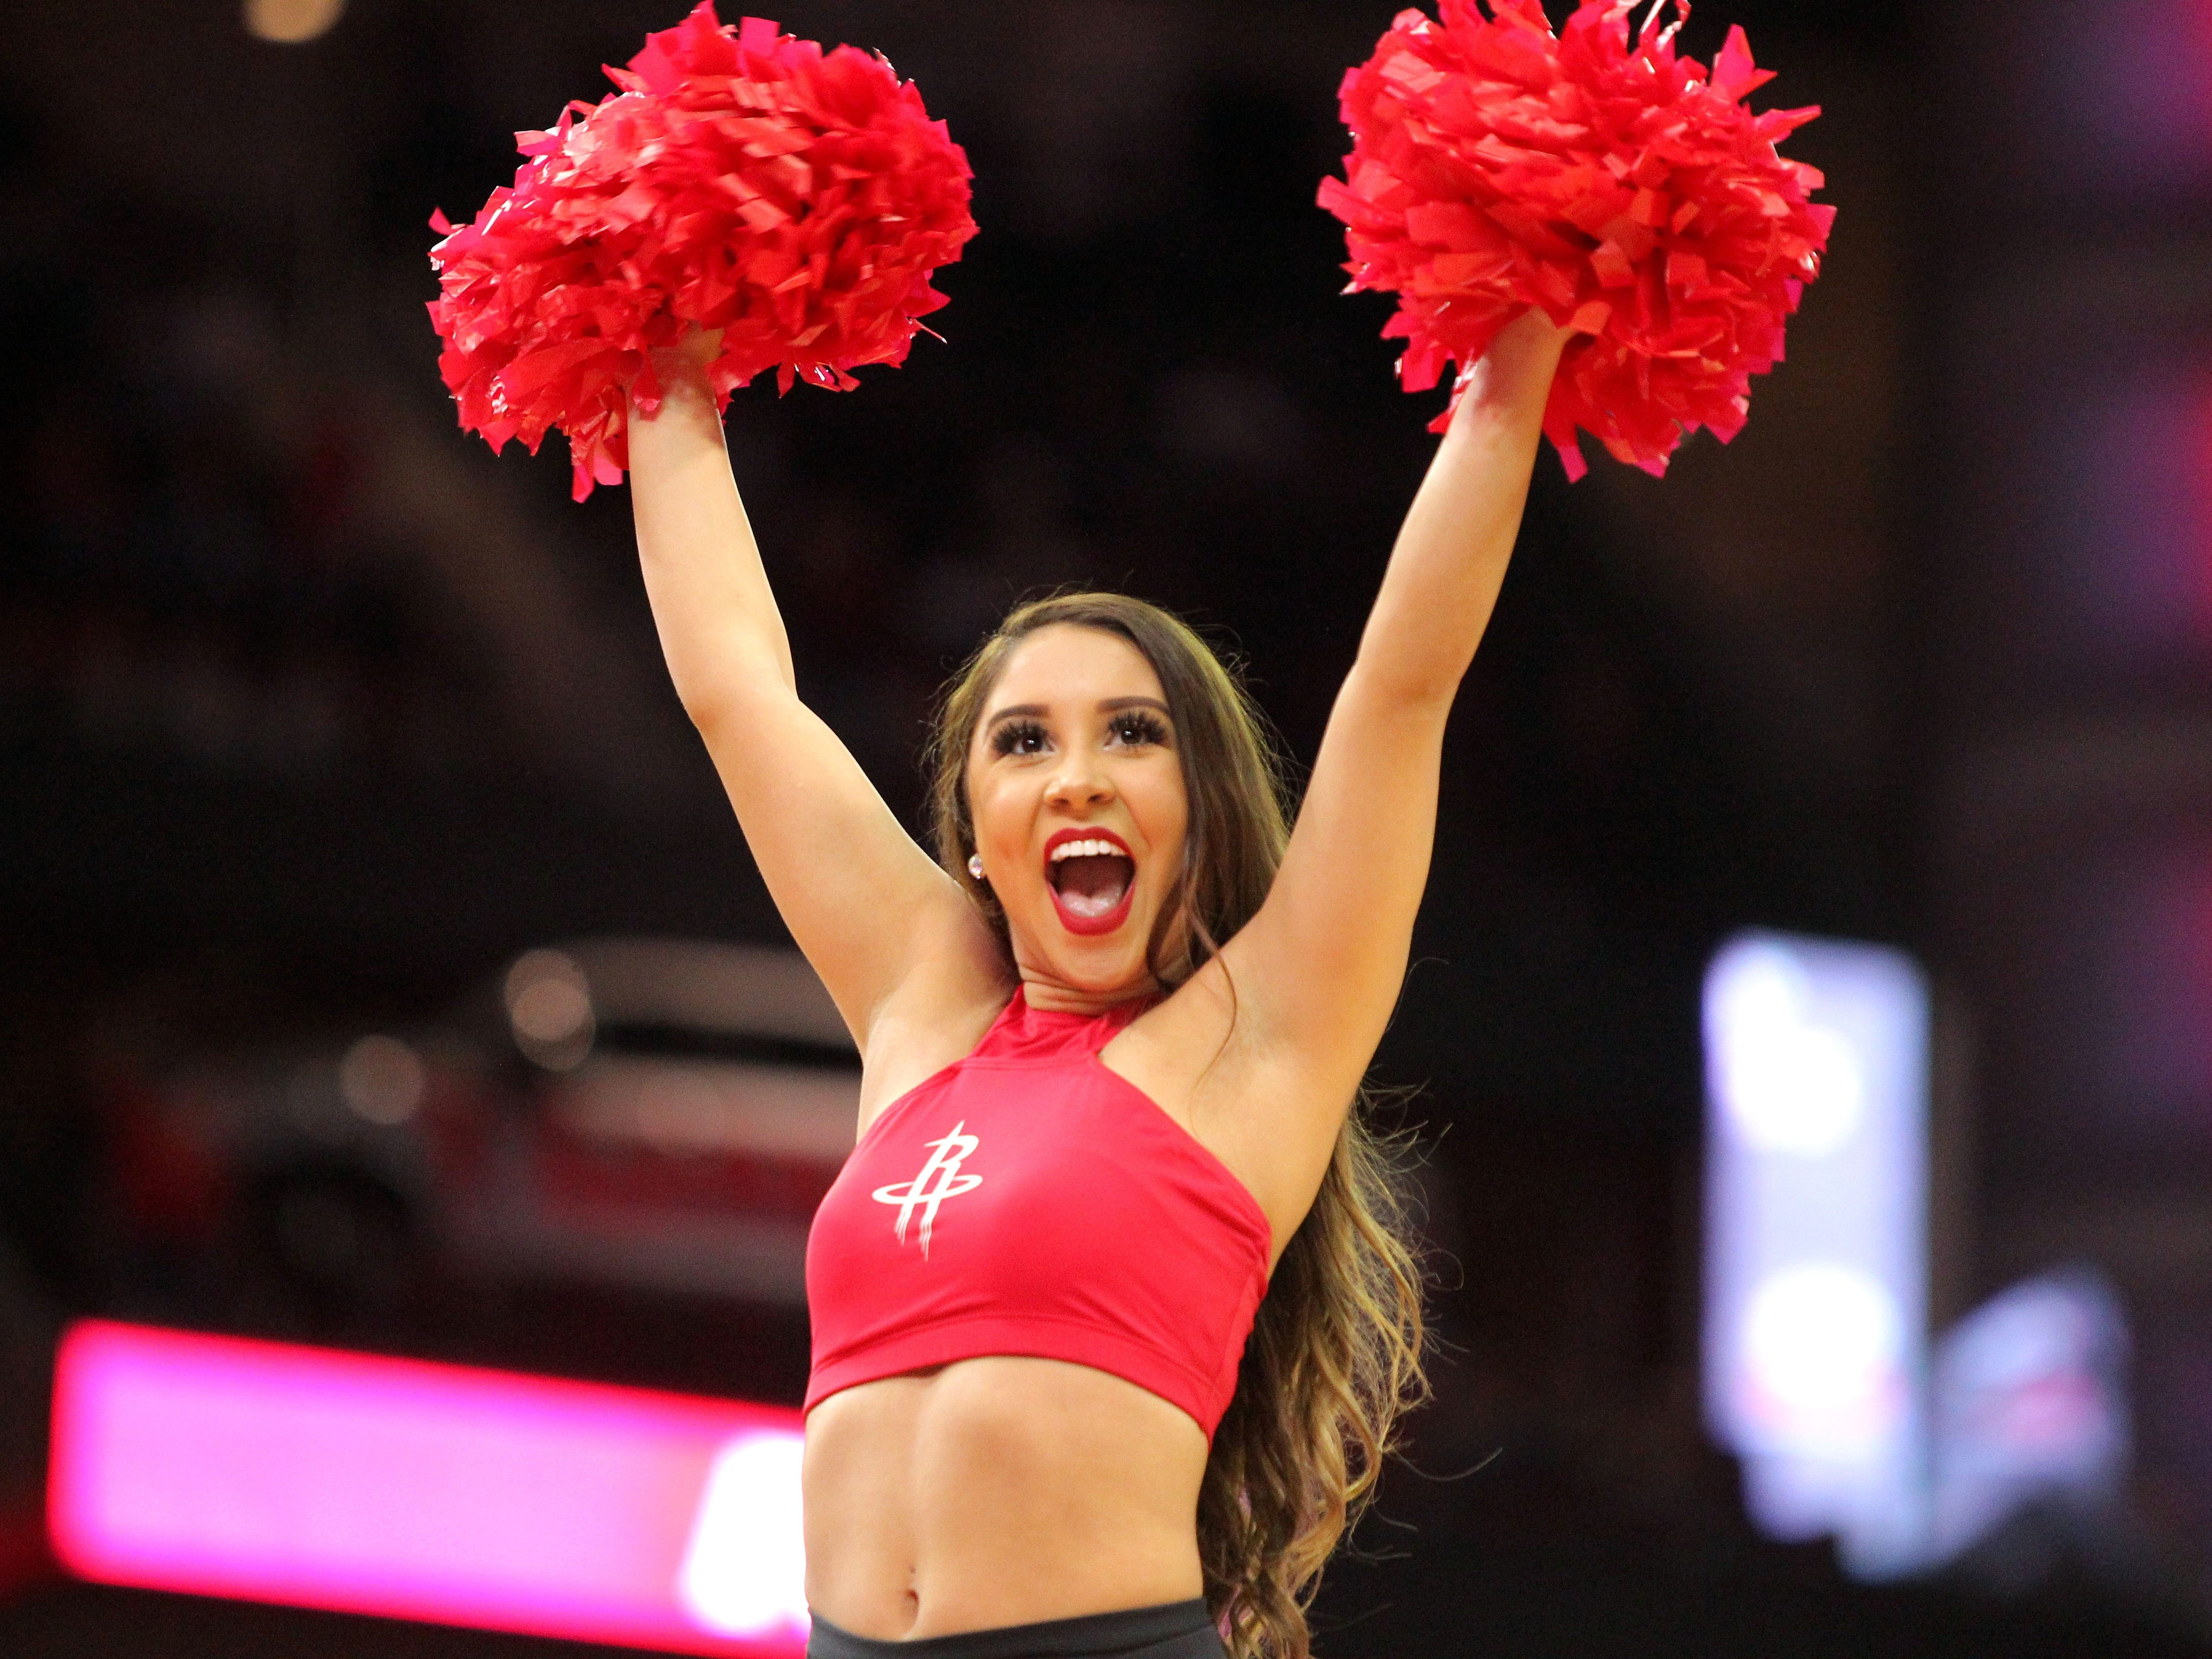 Oct. 26: A Rockets cheerleader fires up the crowd during a game against the Clippers.